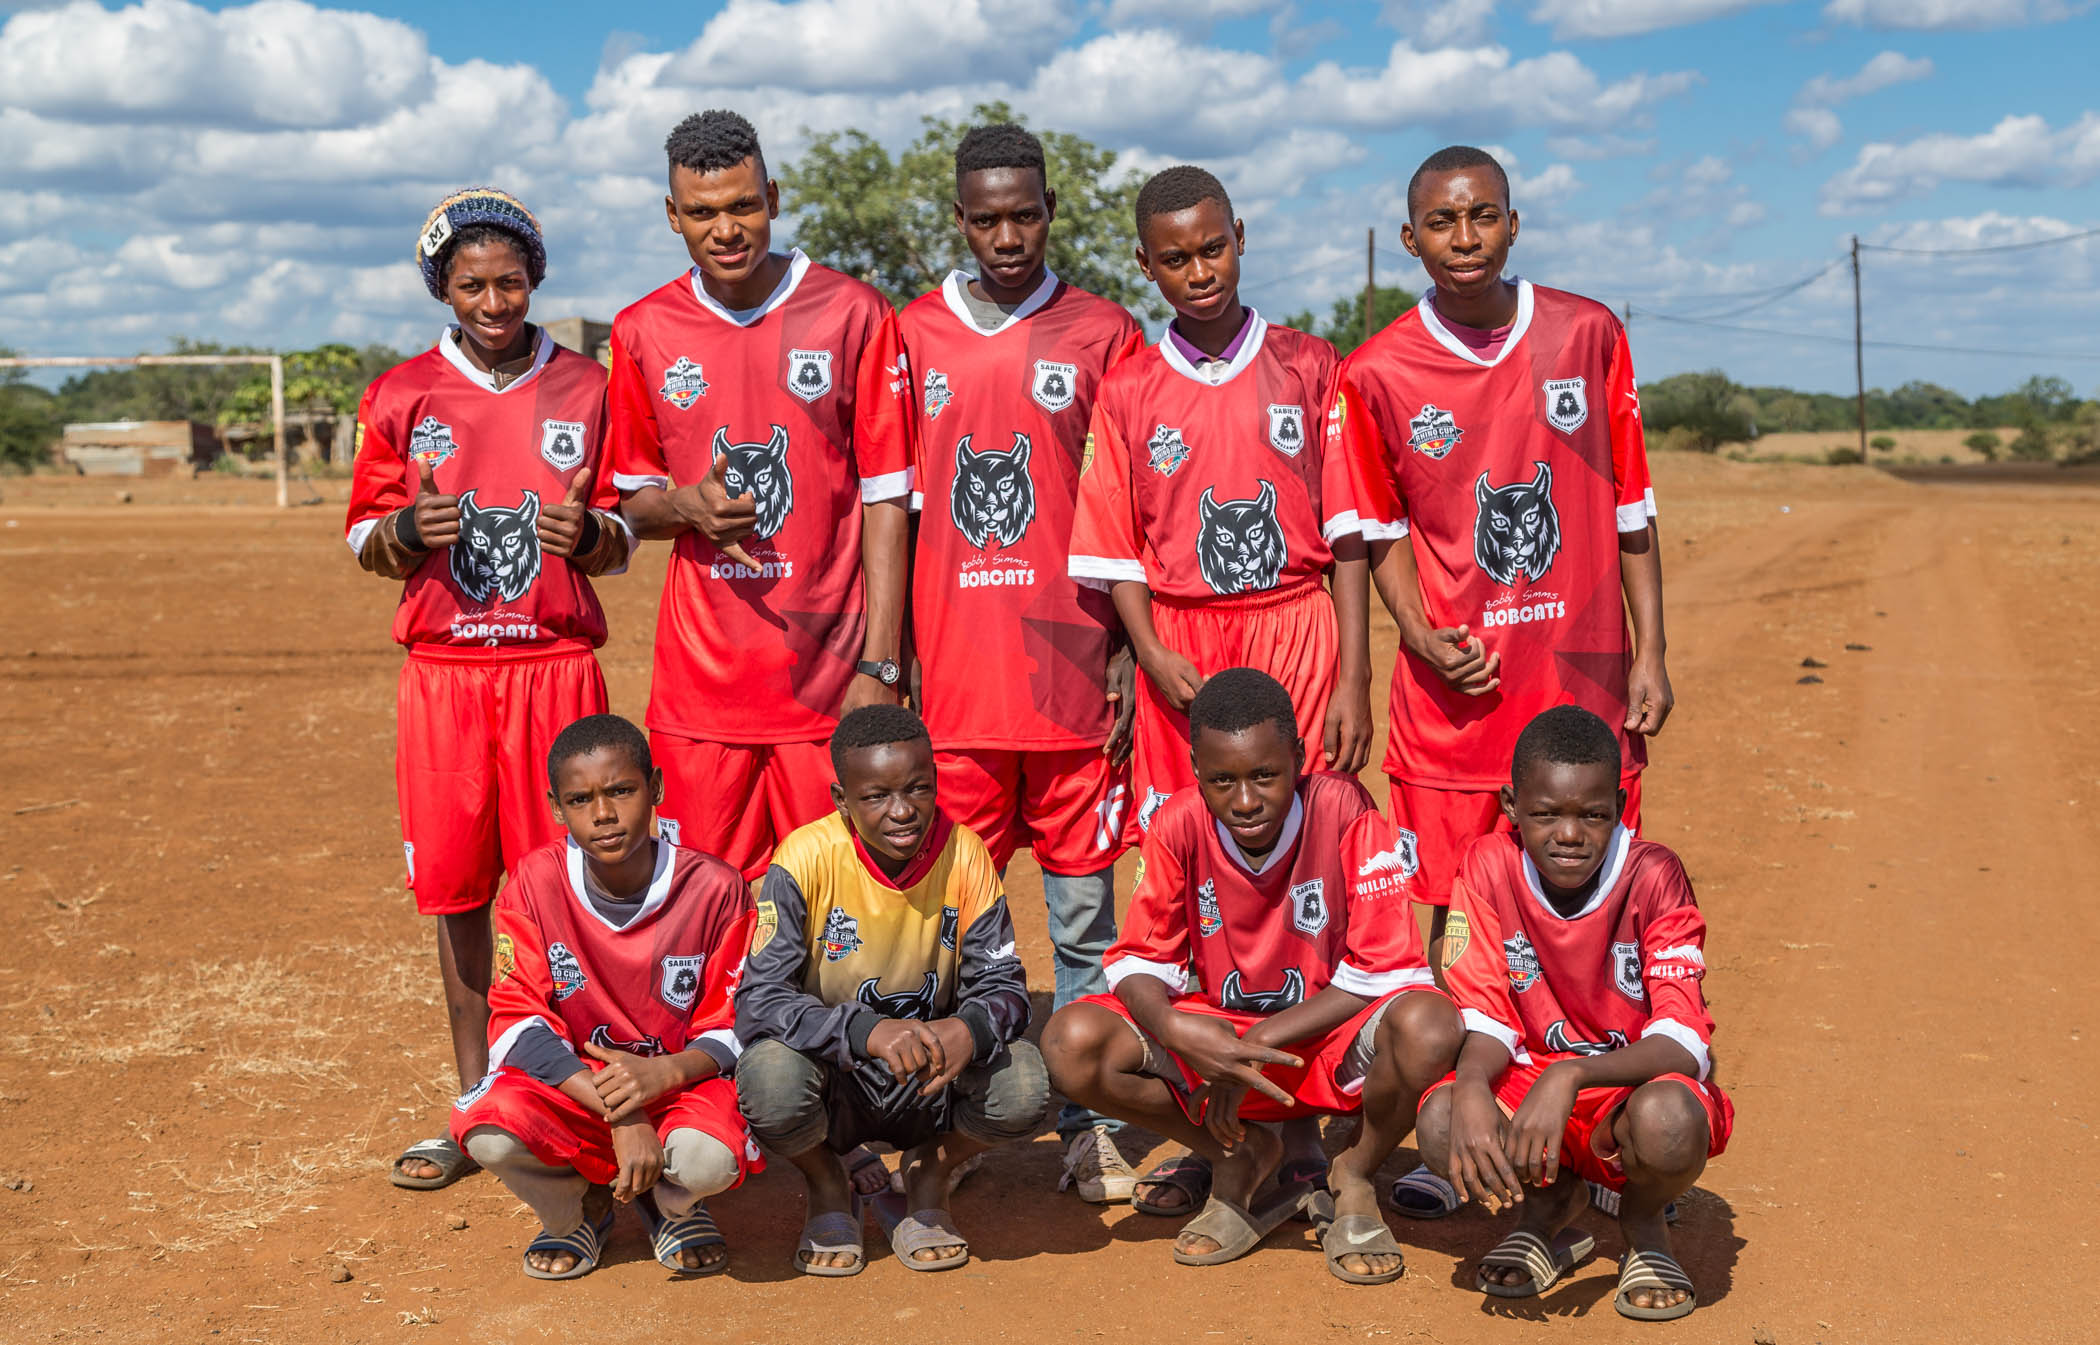 Sabie FC Eagles Team Photo, Rhino Cup Champions League, May 2019